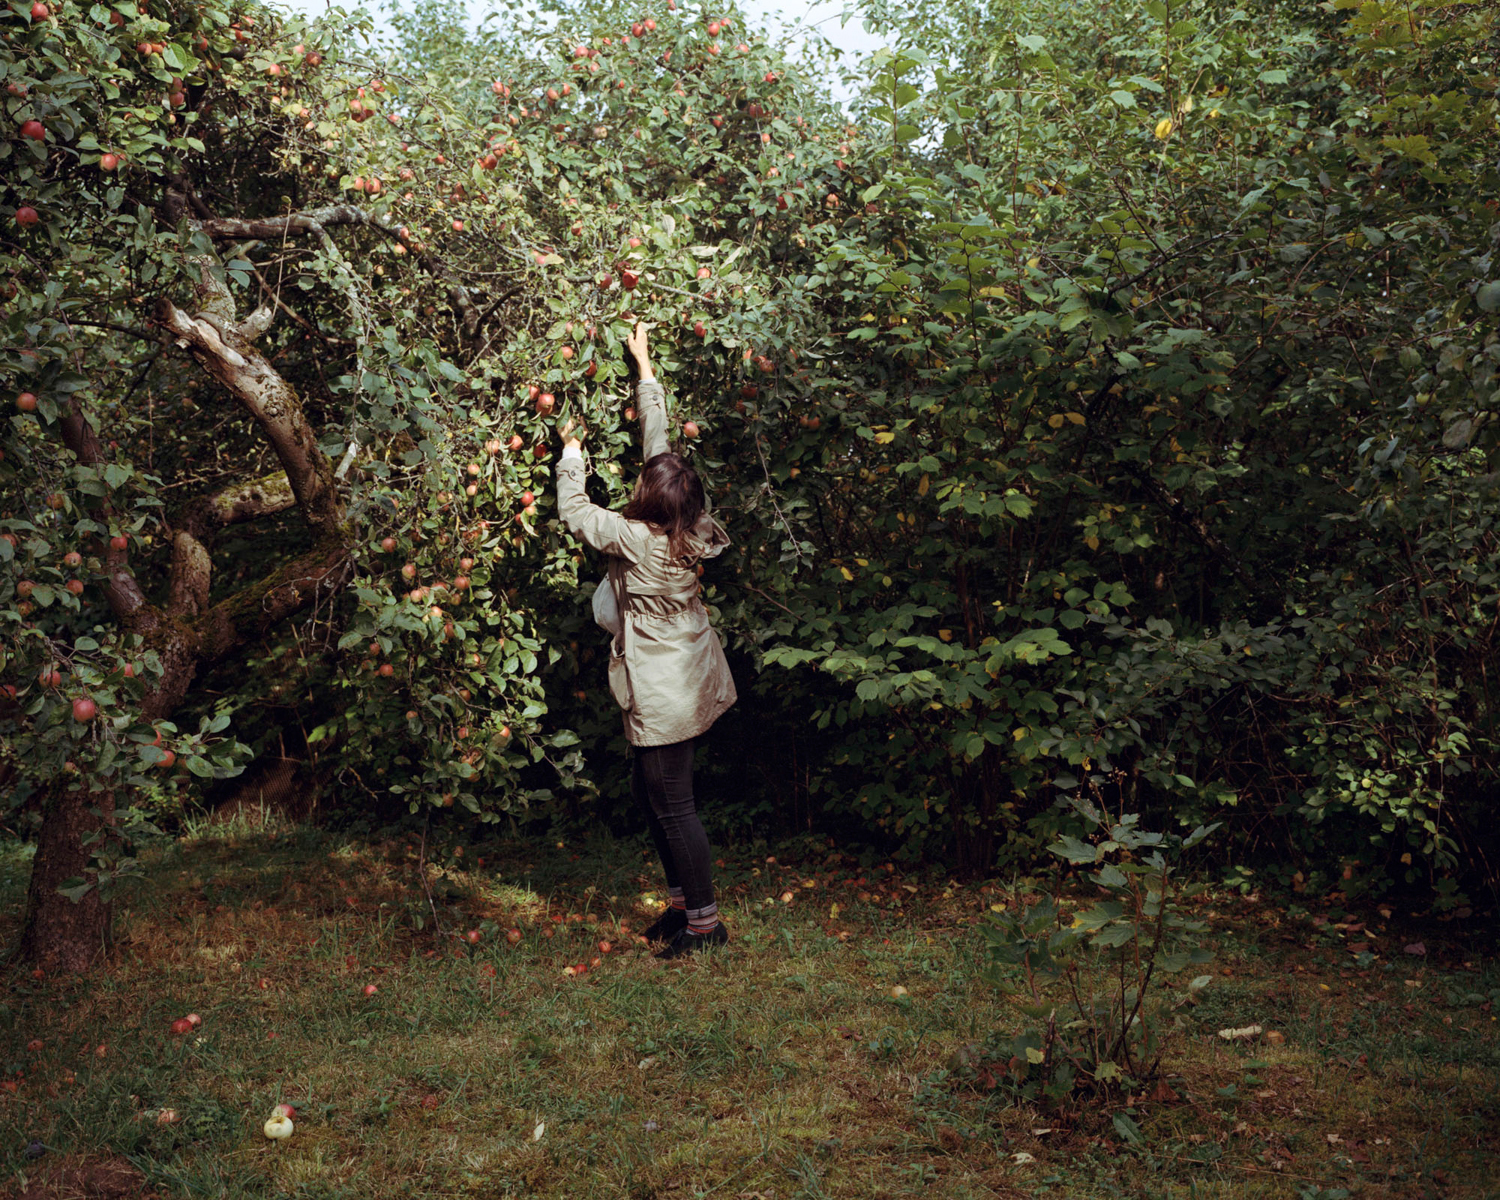 Girl picking some apples in a garden in Kaunas, Lithuania, September 2015.